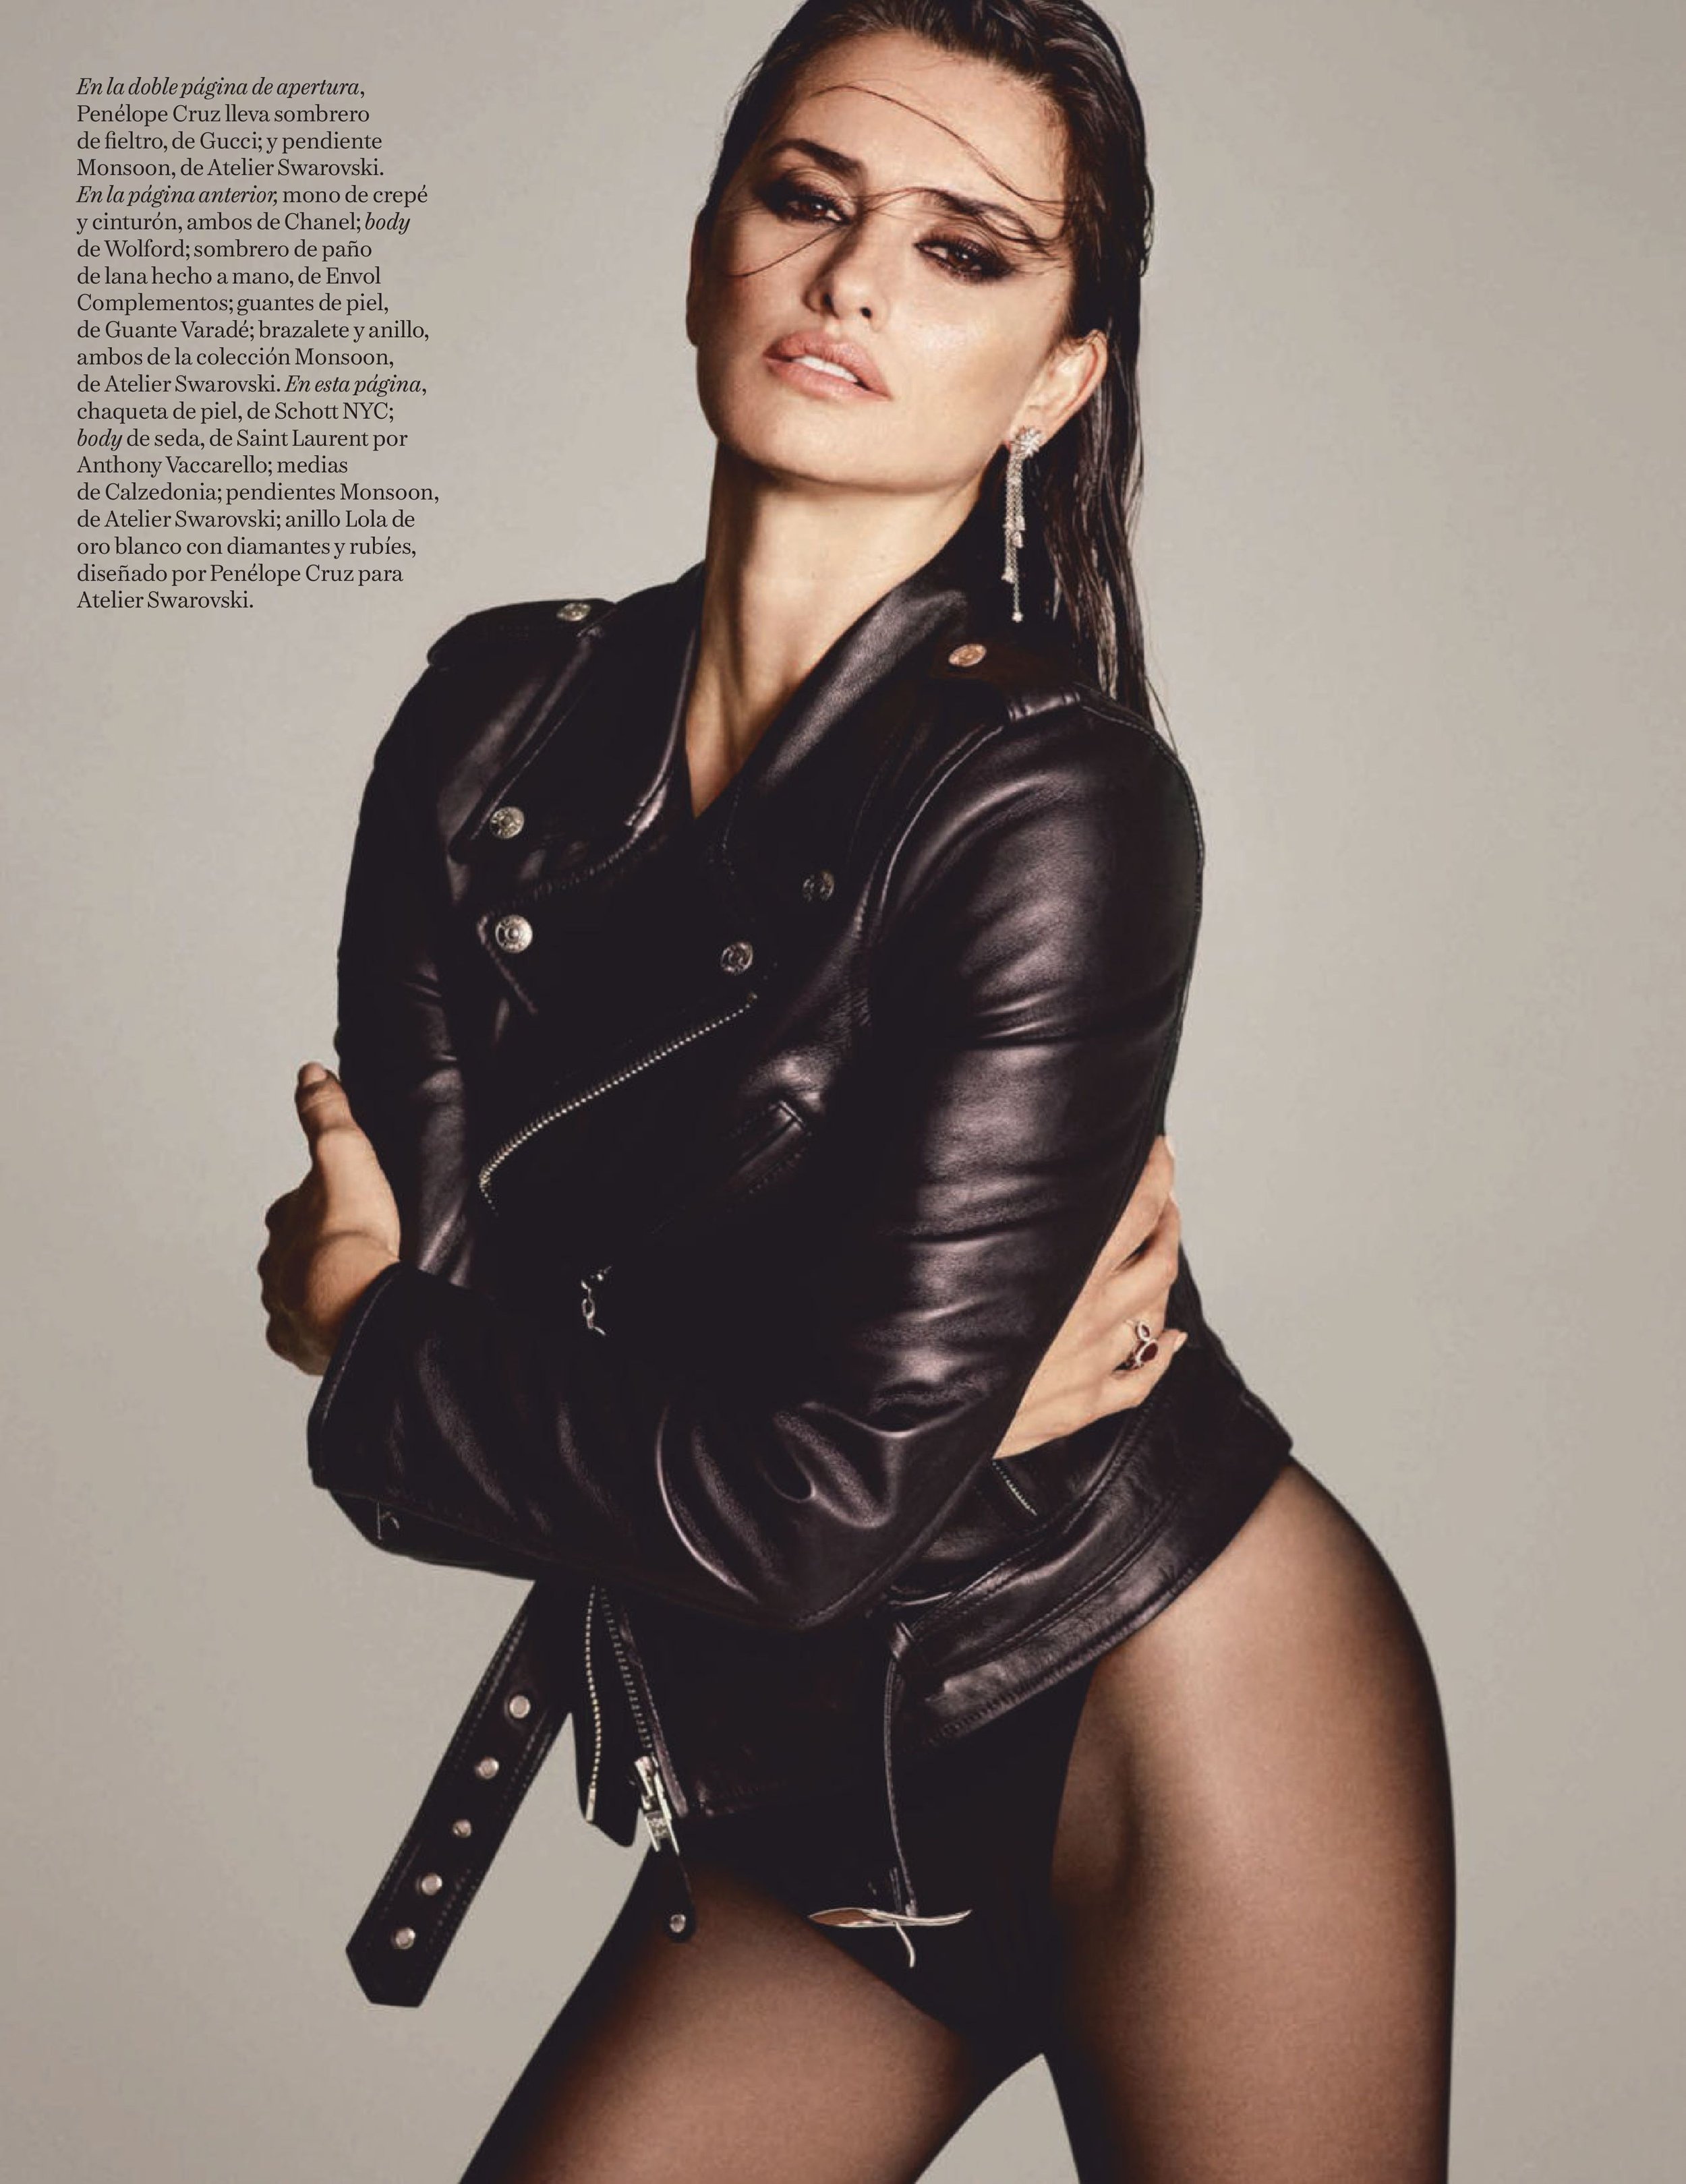 Penelope-Cruz-Luigi-Iango-Vogue-Spain-April-2019- (9).jpg